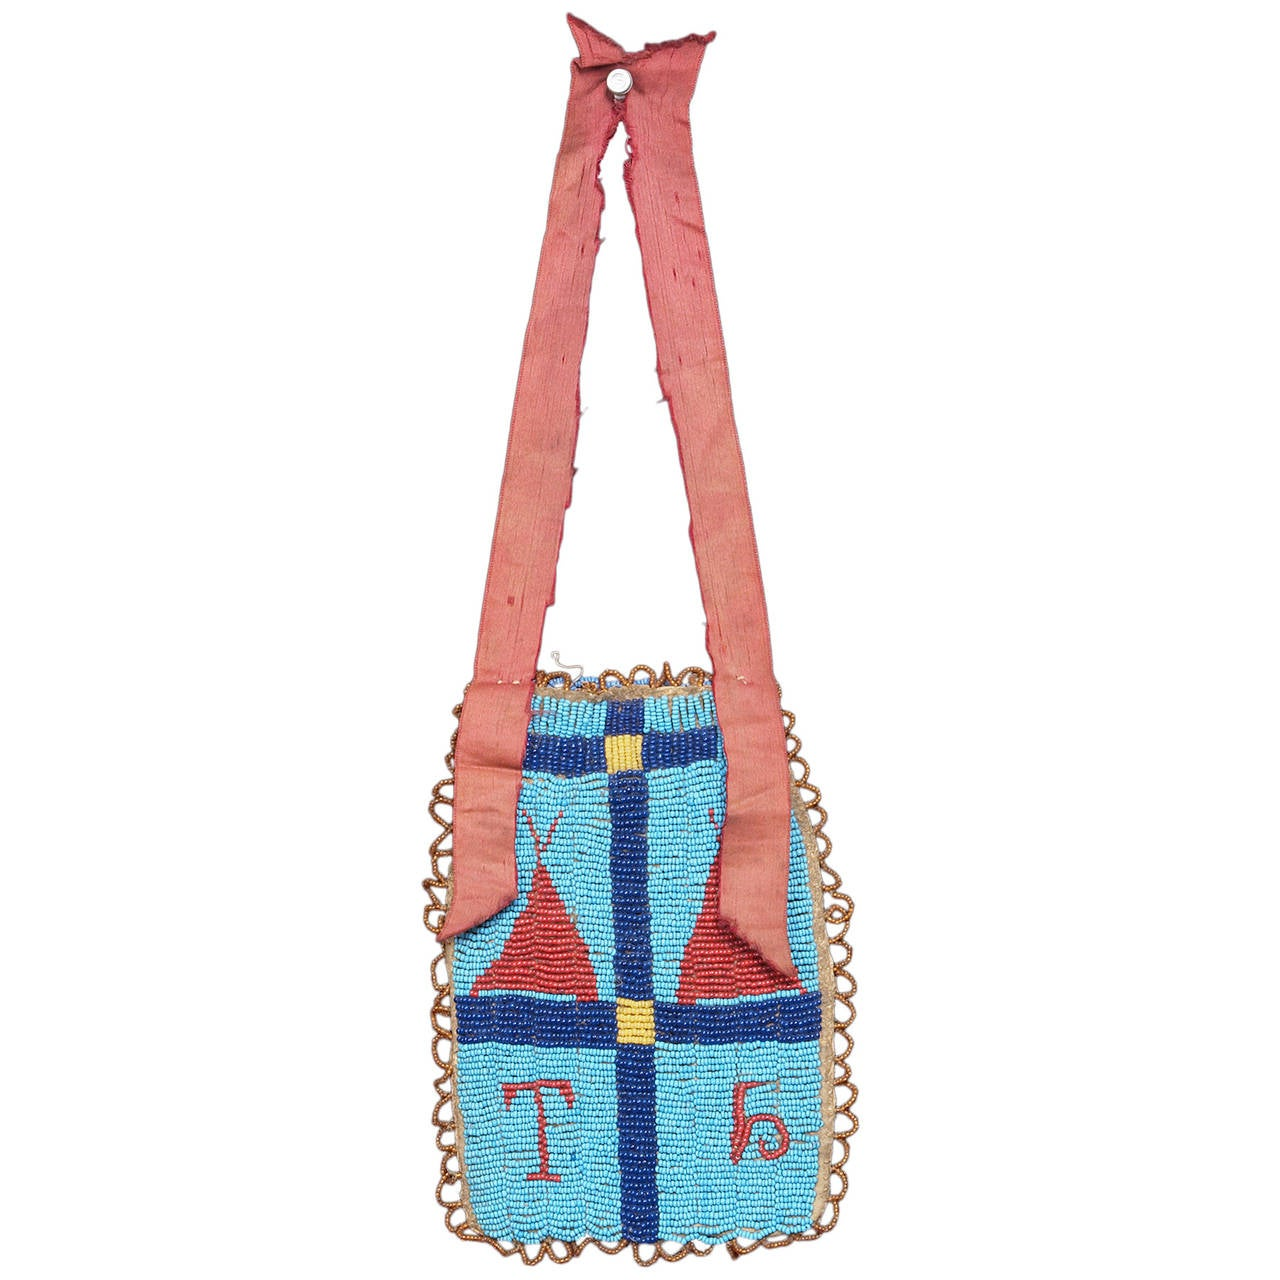 Native American Pictorial Beaded Hide Bag - Sioux (Plains), 19th century